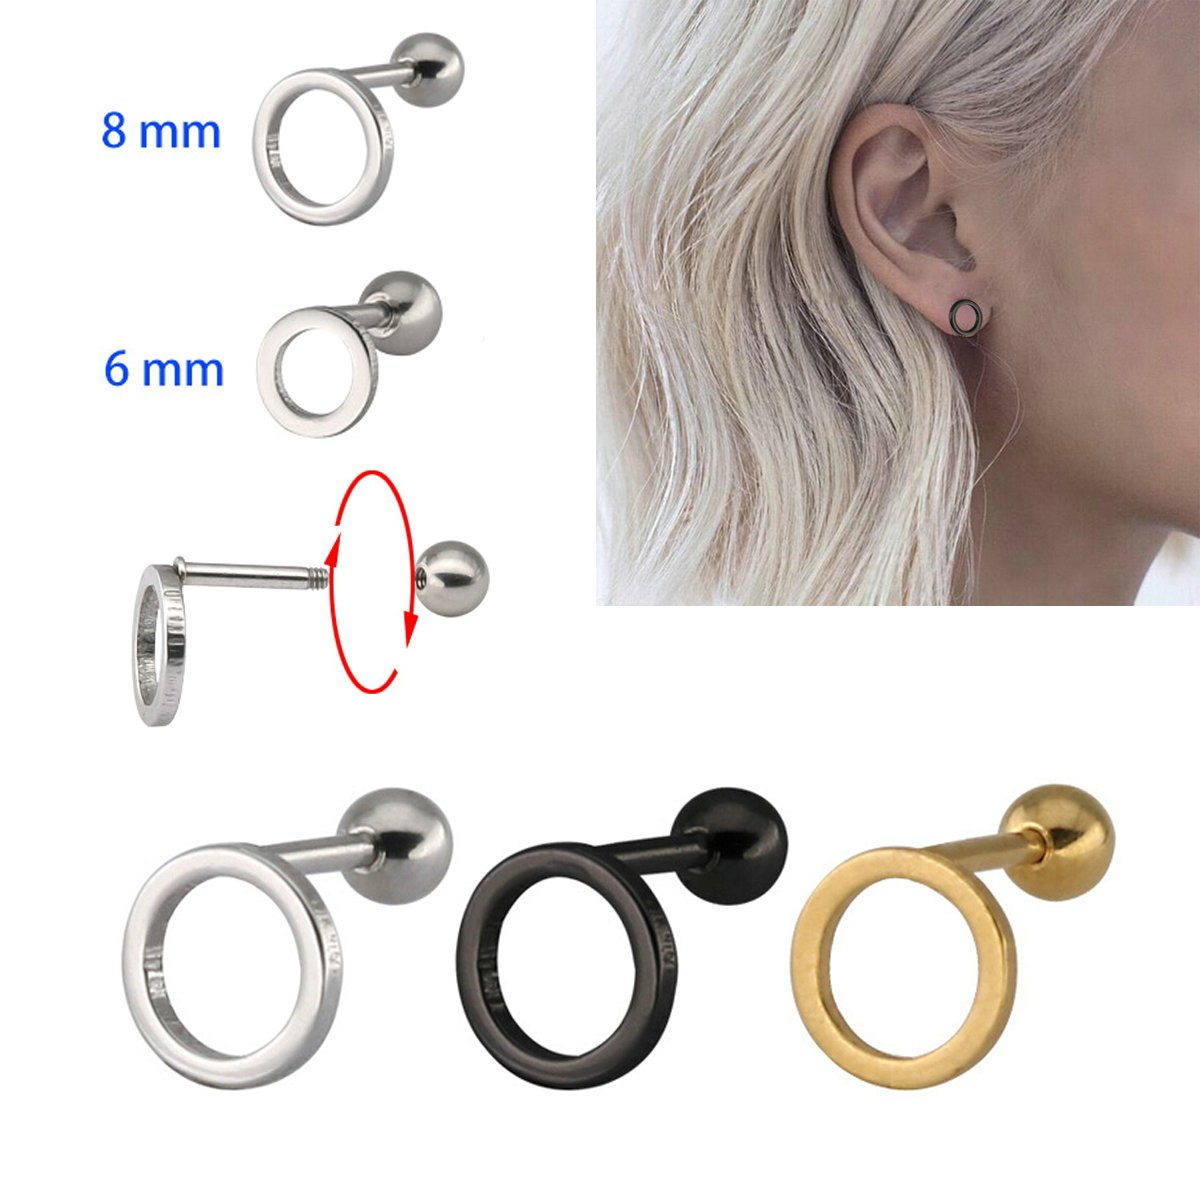 Stainless Steel Stud Earrings Ball Rould Circle Anazoz Womens Earrings Set